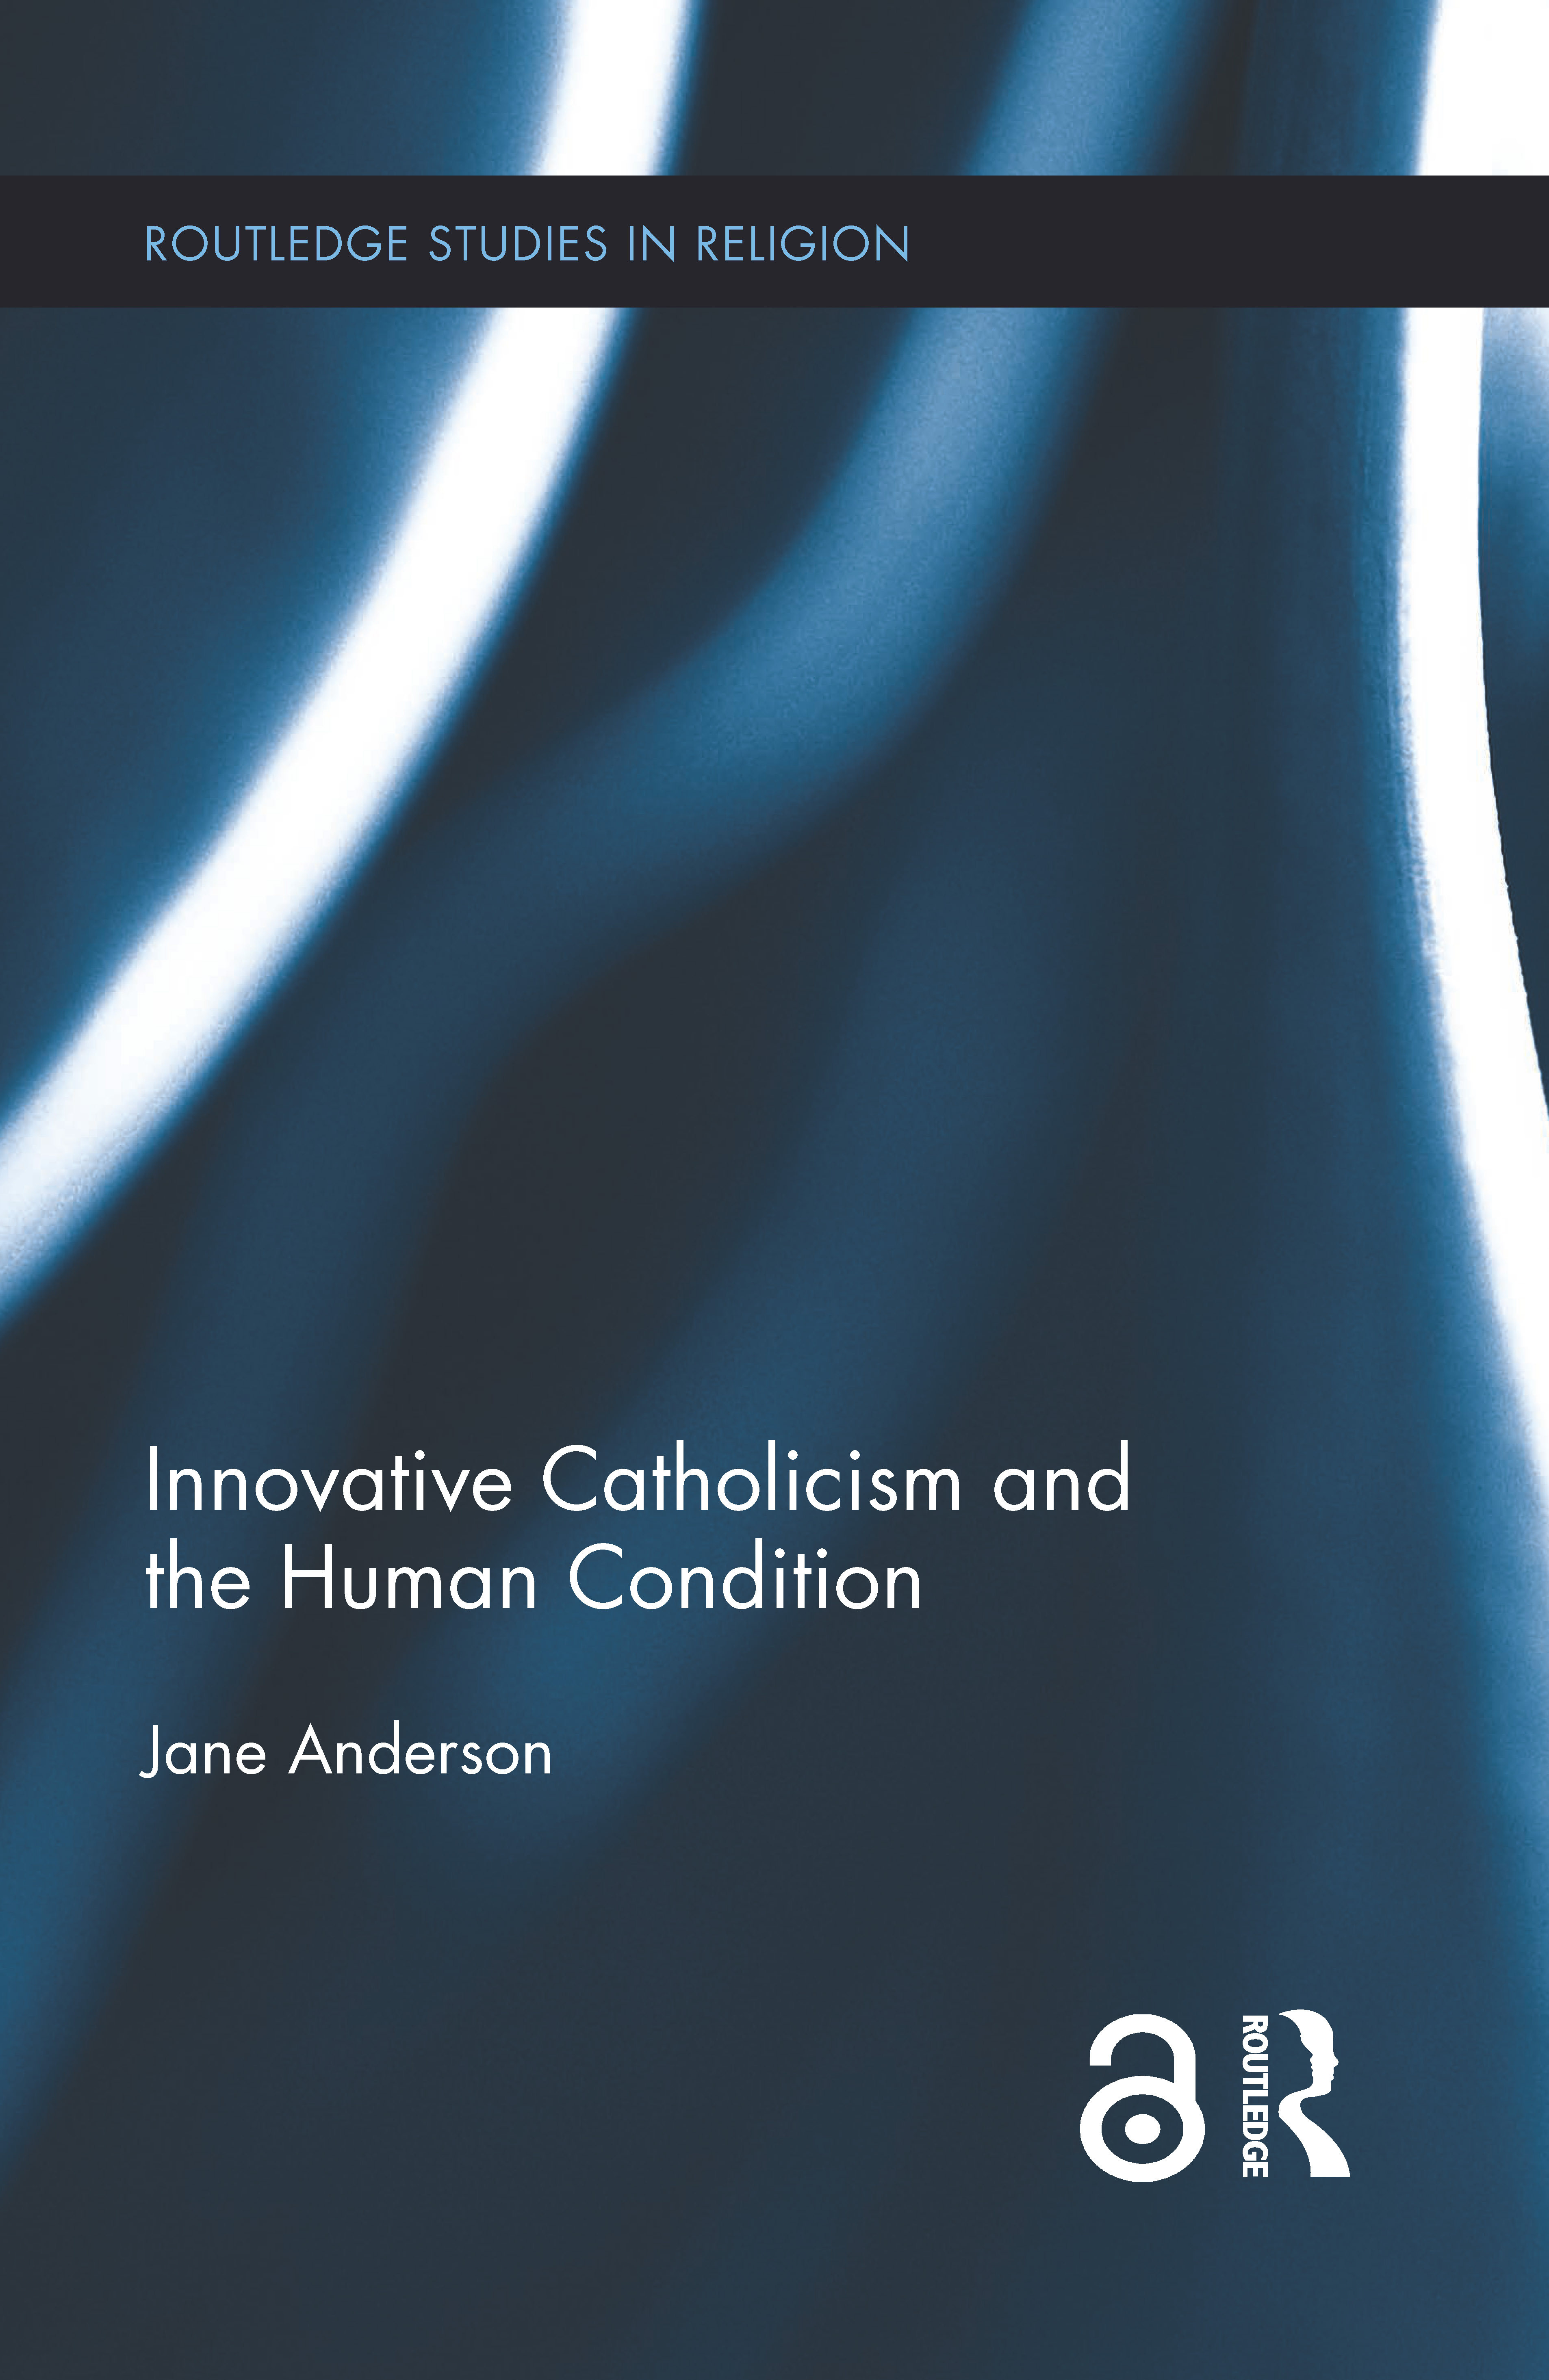 Innovative Catholicism and the Human Condition